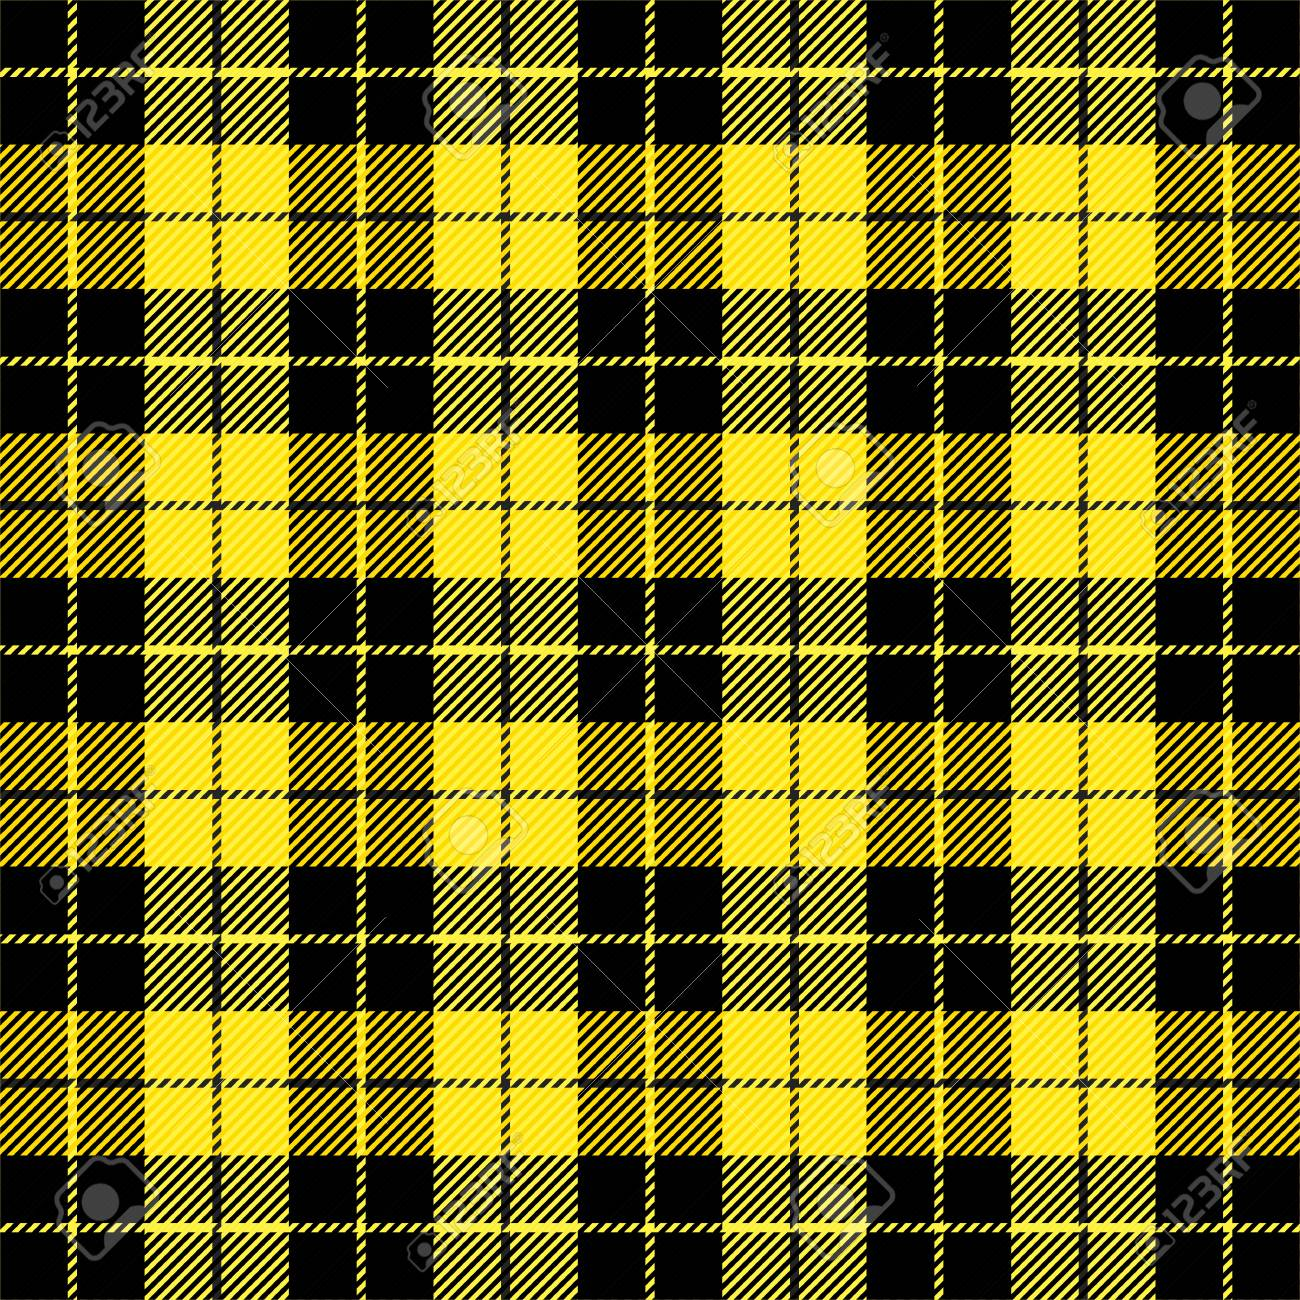 Wallace tartan plaid  Scottish pattern in black and yellow cage